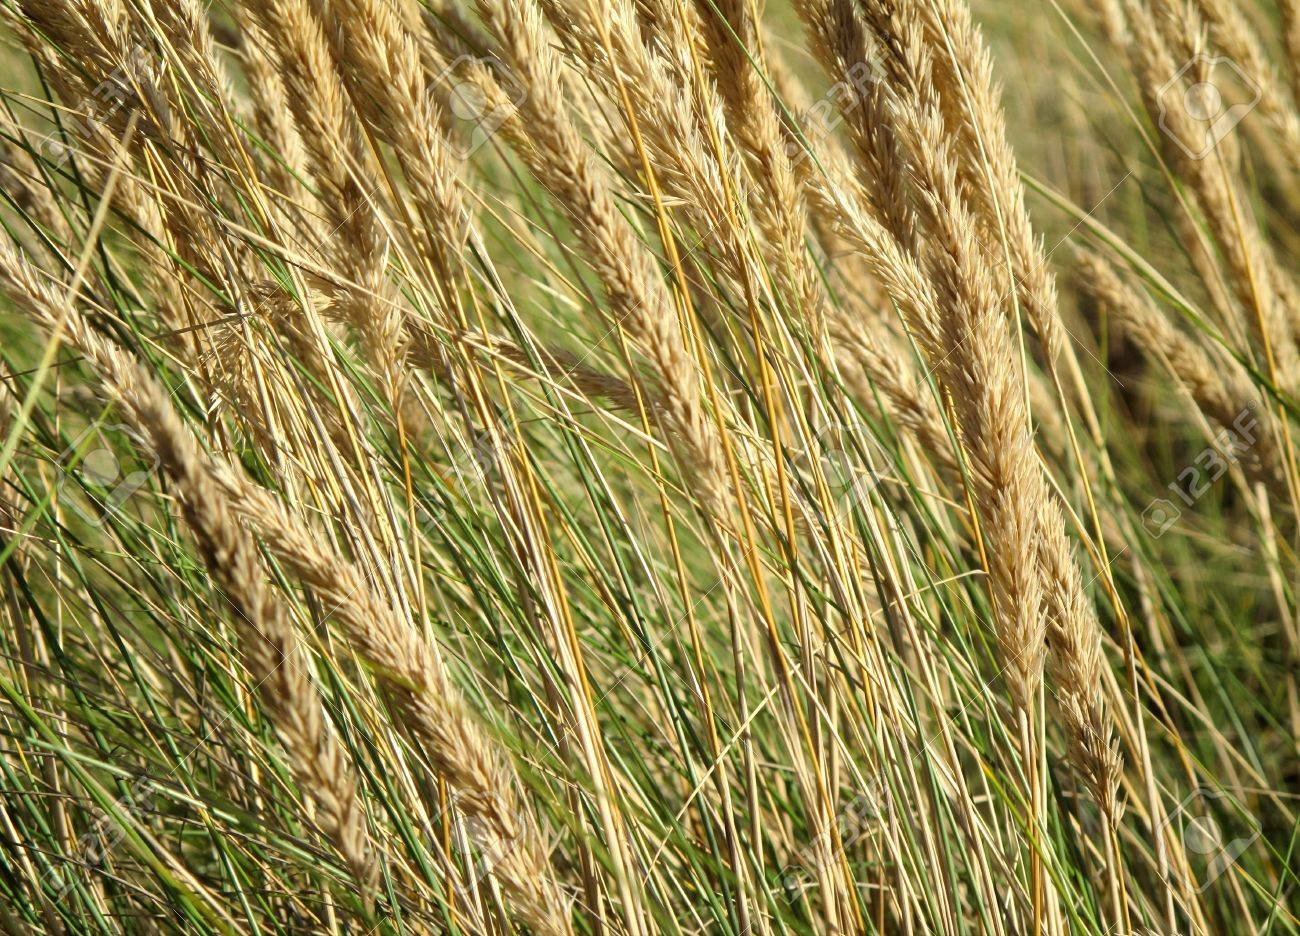 Beautiful wallpaper image with many grasses herbs Stock Photo - 15503613